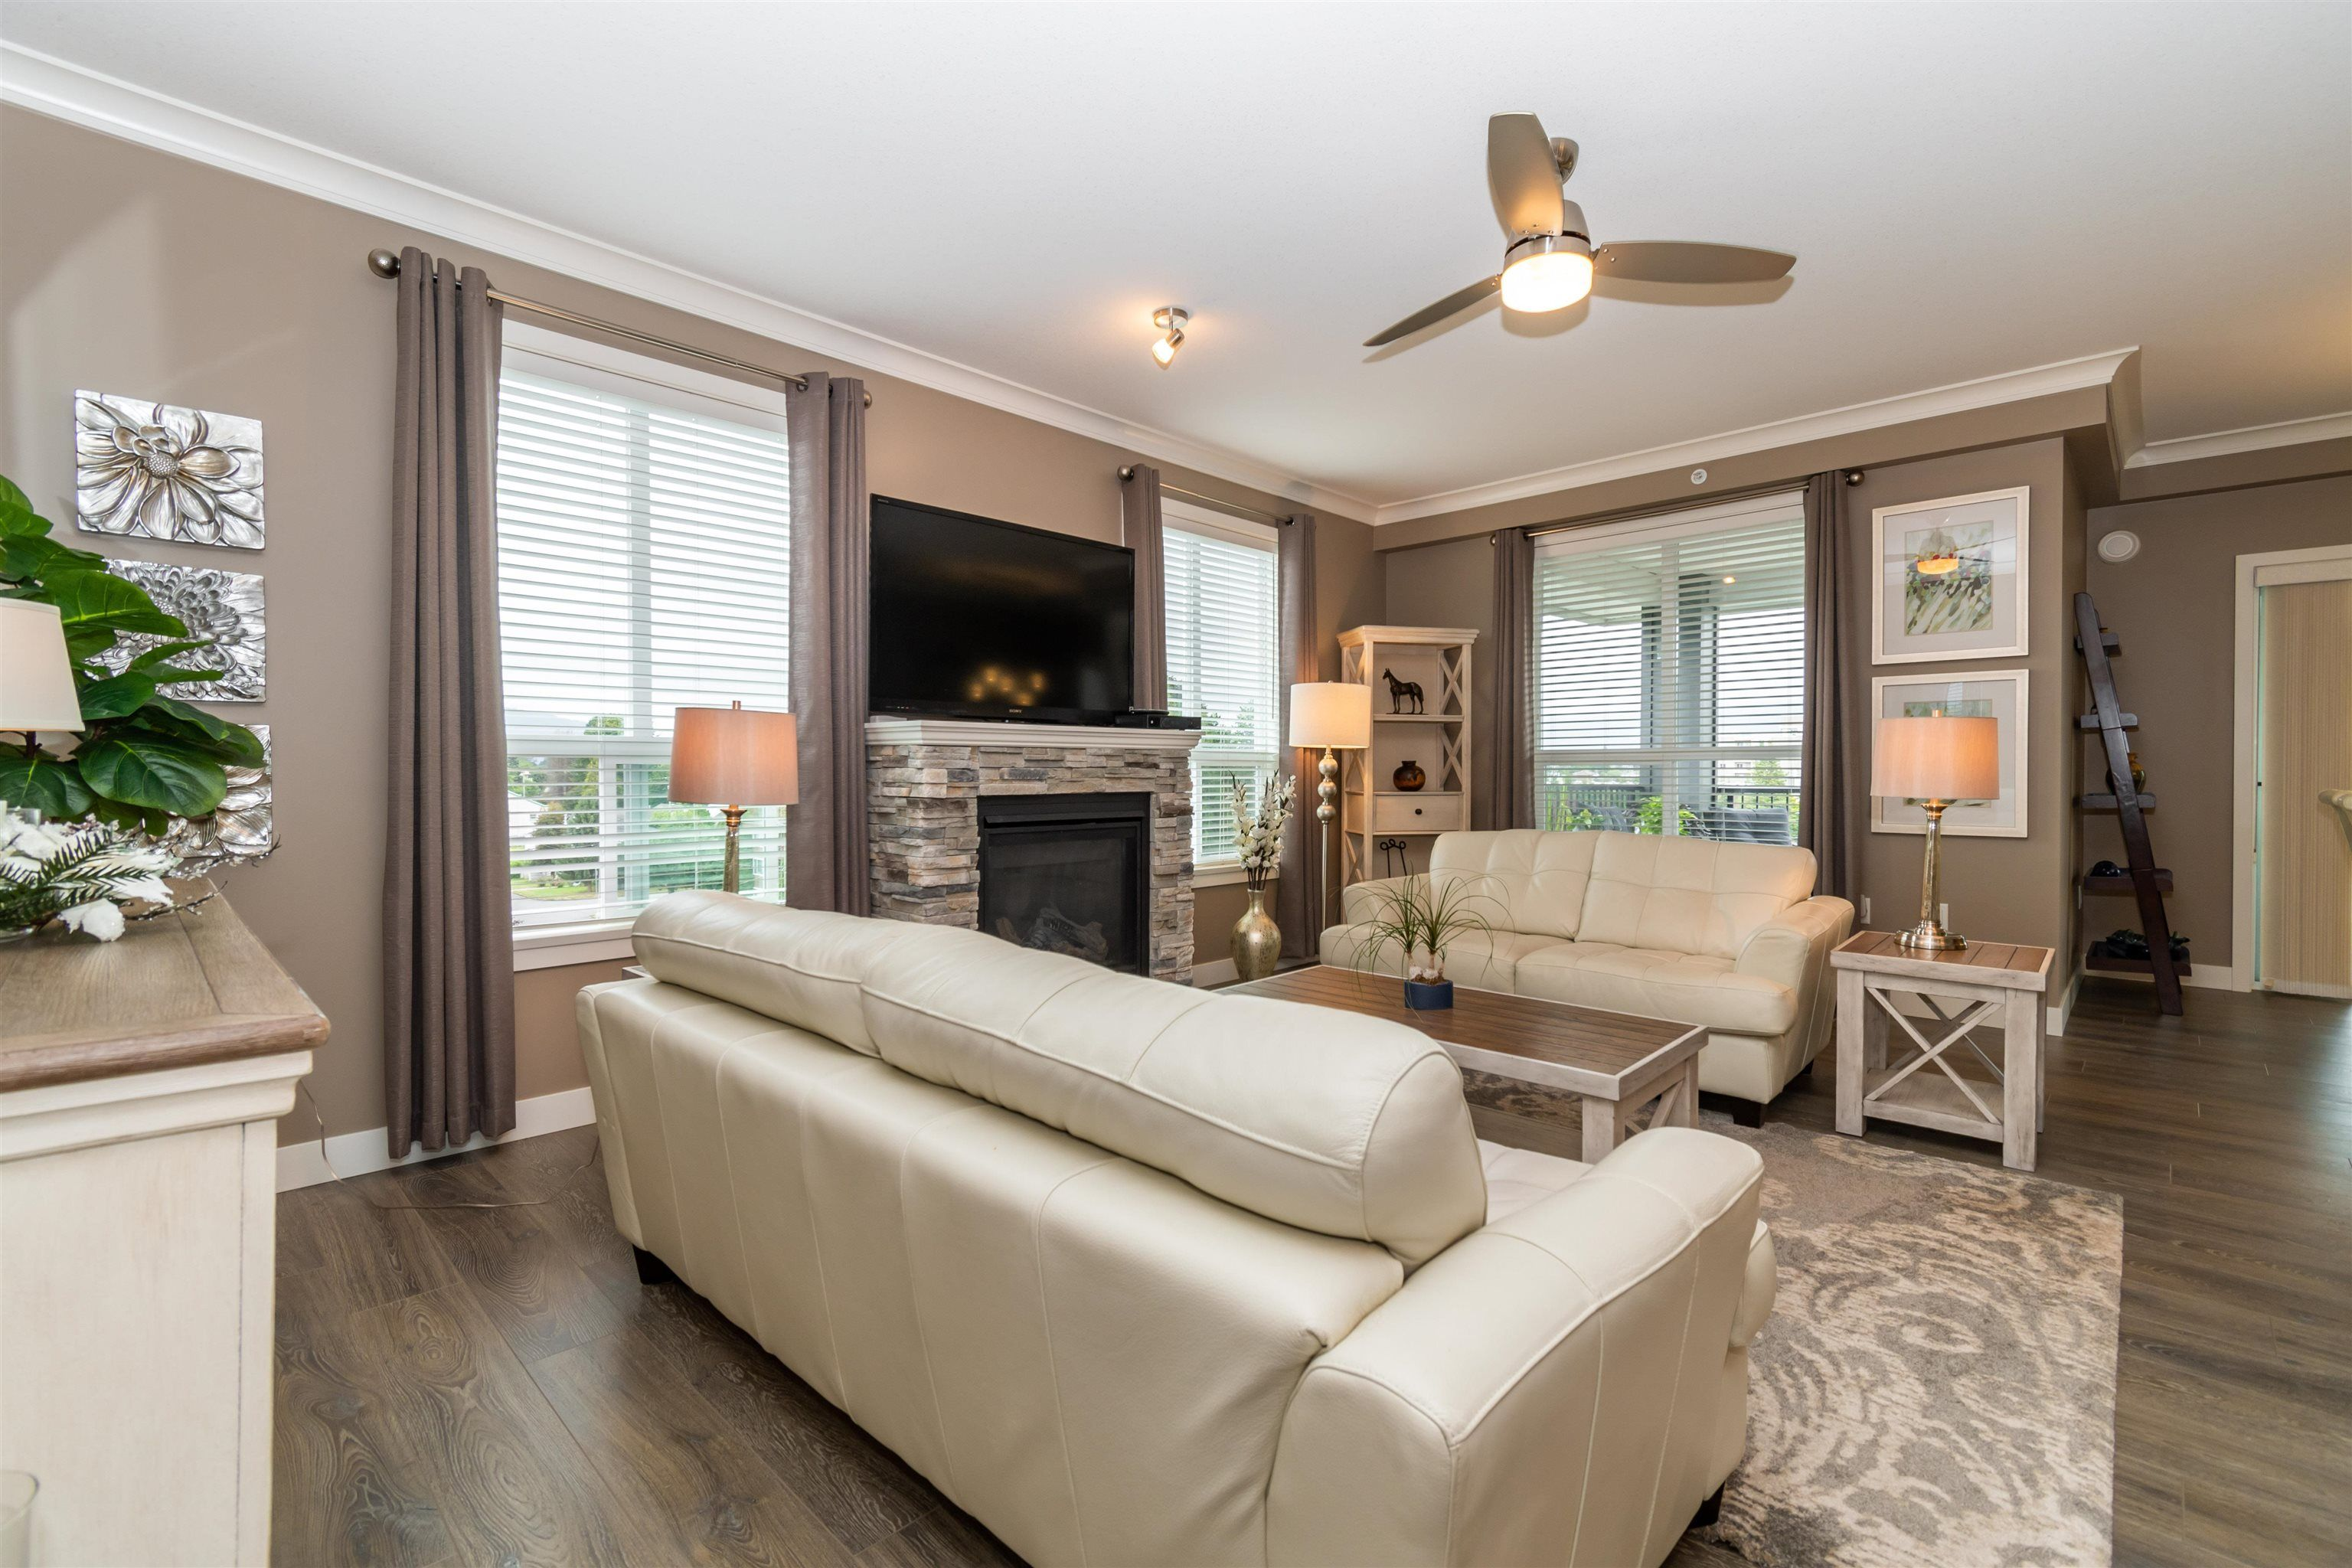 Main Photo: 402 45630 SPADINA Avenue in Chilliwack: Chilliwack W Young-Well Condo for sale : MLS®# R2617766